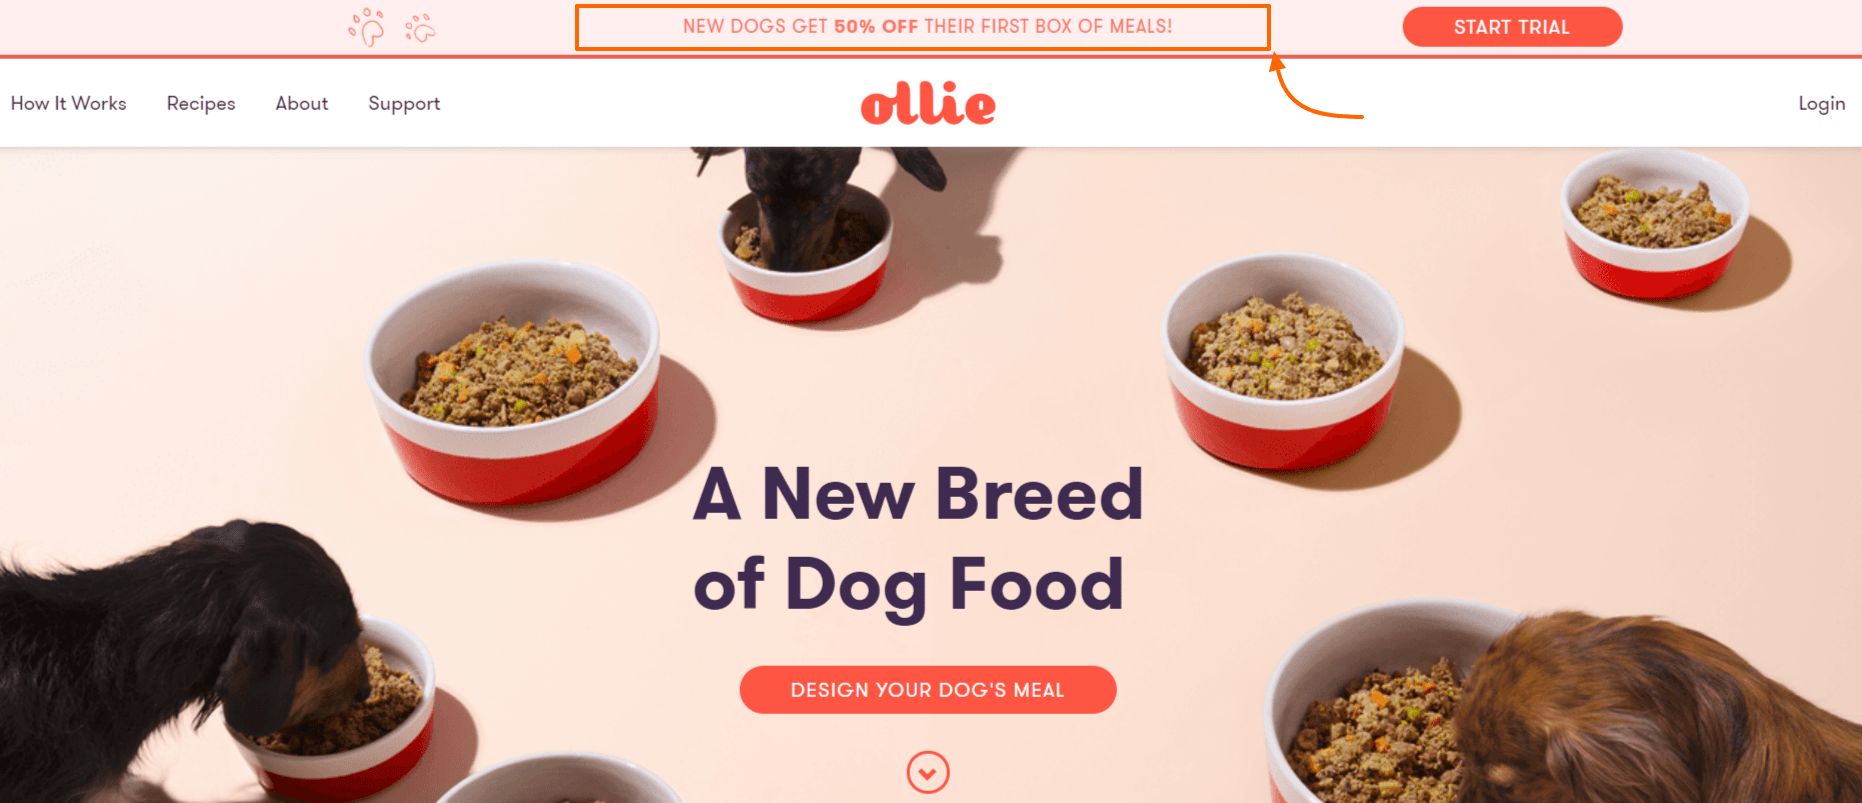 Ollie Coupon Codes- The best dog nutrition